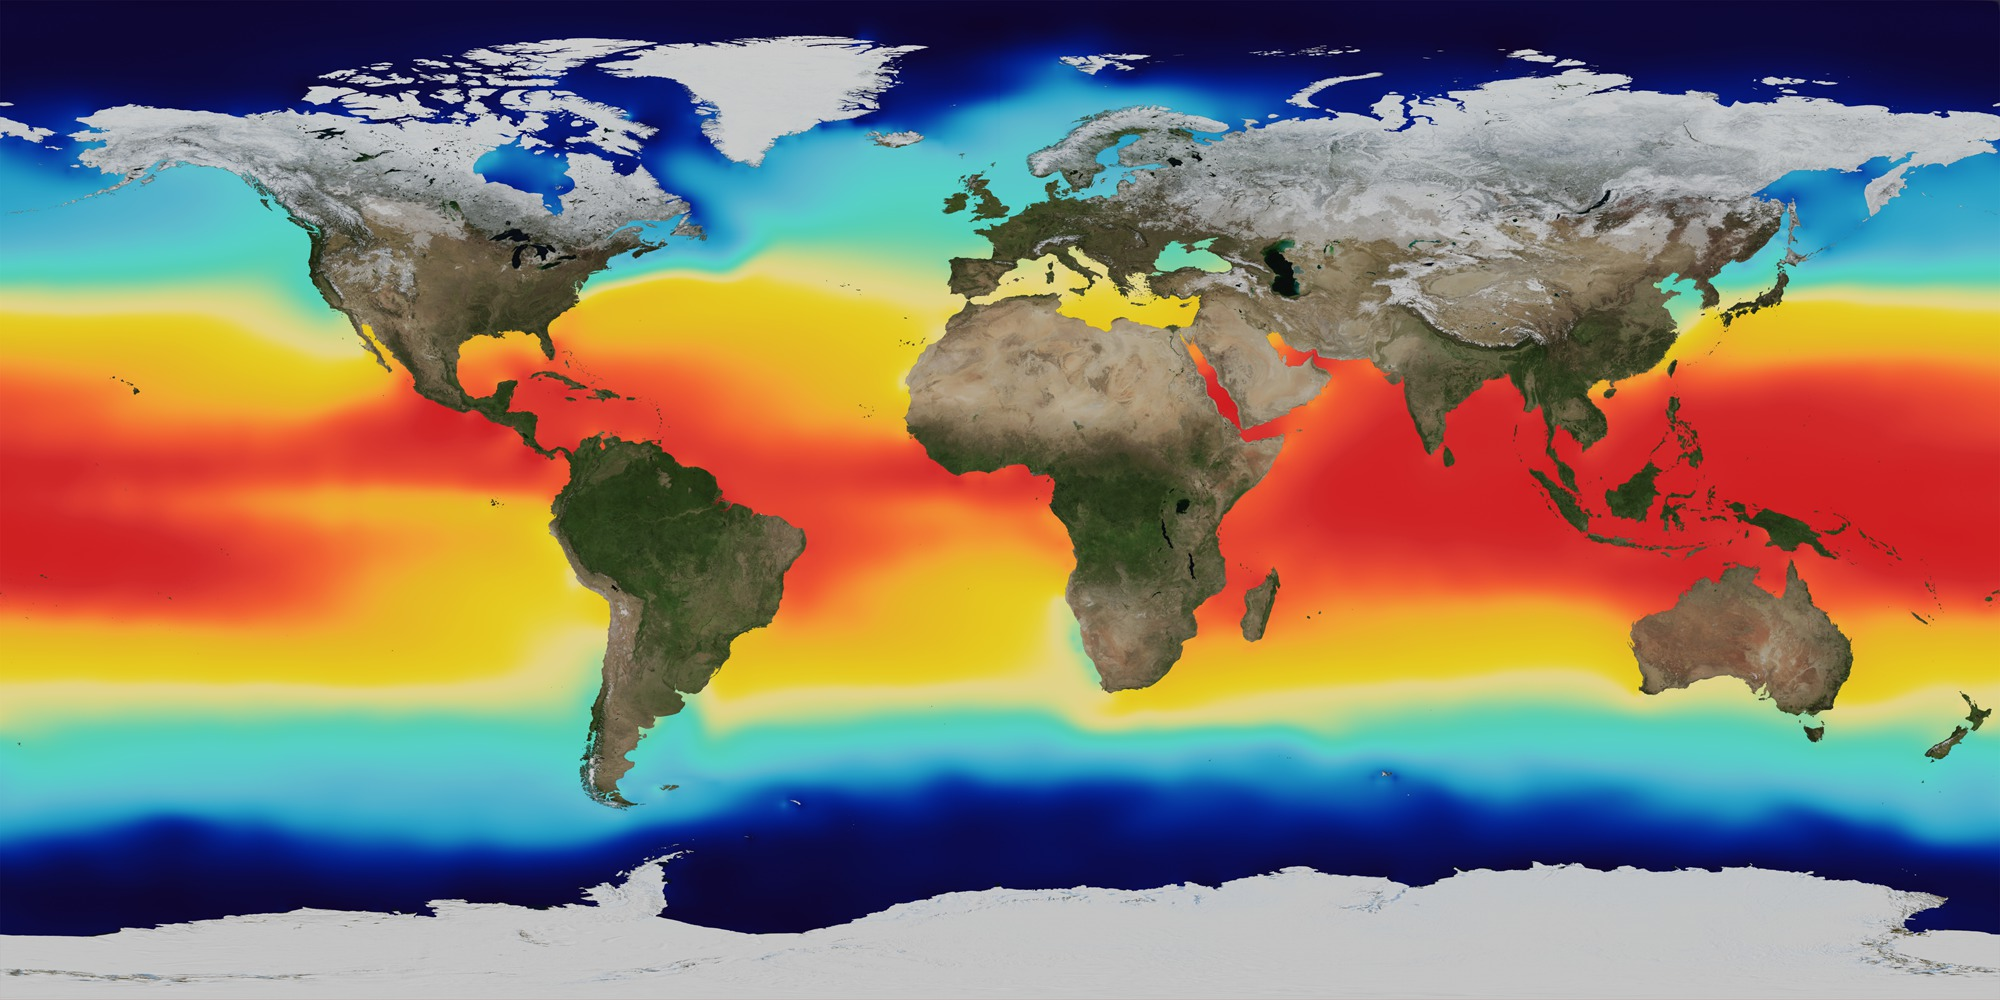 Svs sea surface temperature salinity and density right click images to download them if they automatically display in your browser global map gumiabroncs